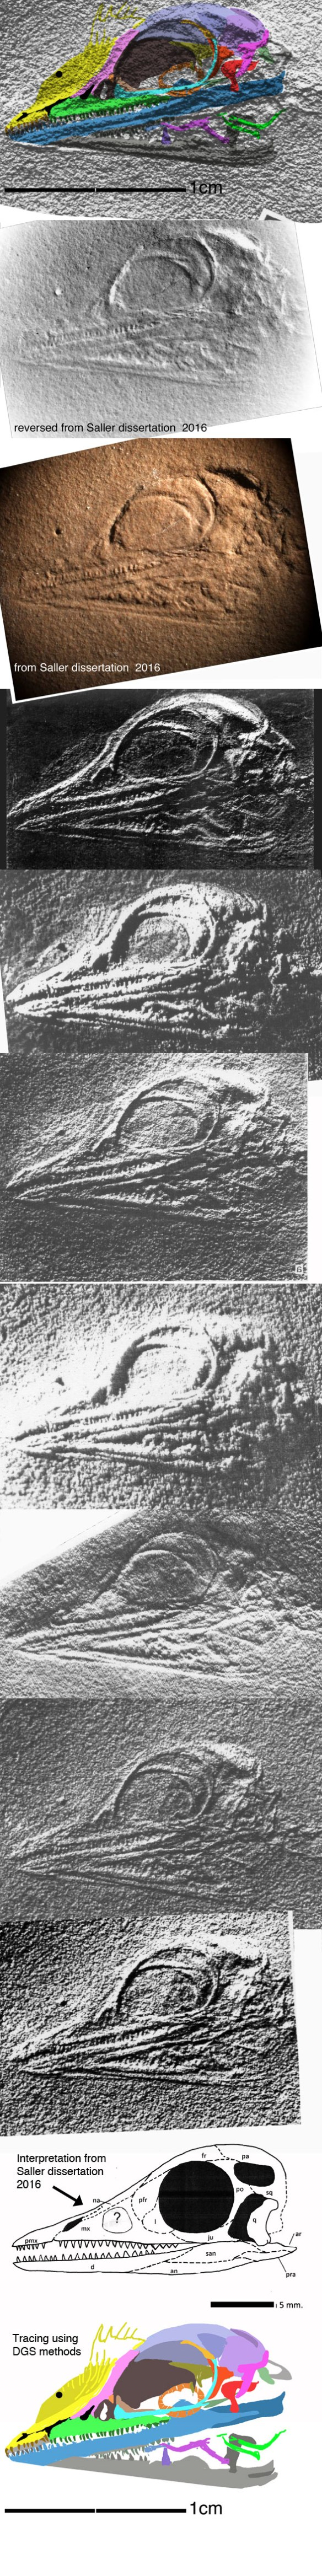 Figure 1. The skull of Cosesaurus traced using DGS methods and lit at various angles. Some of these are negatives of a negative mold, giving a positive view. Saller was not sure about the antorbital fenestra, probably because it is represented by an elevated portion in the mold.